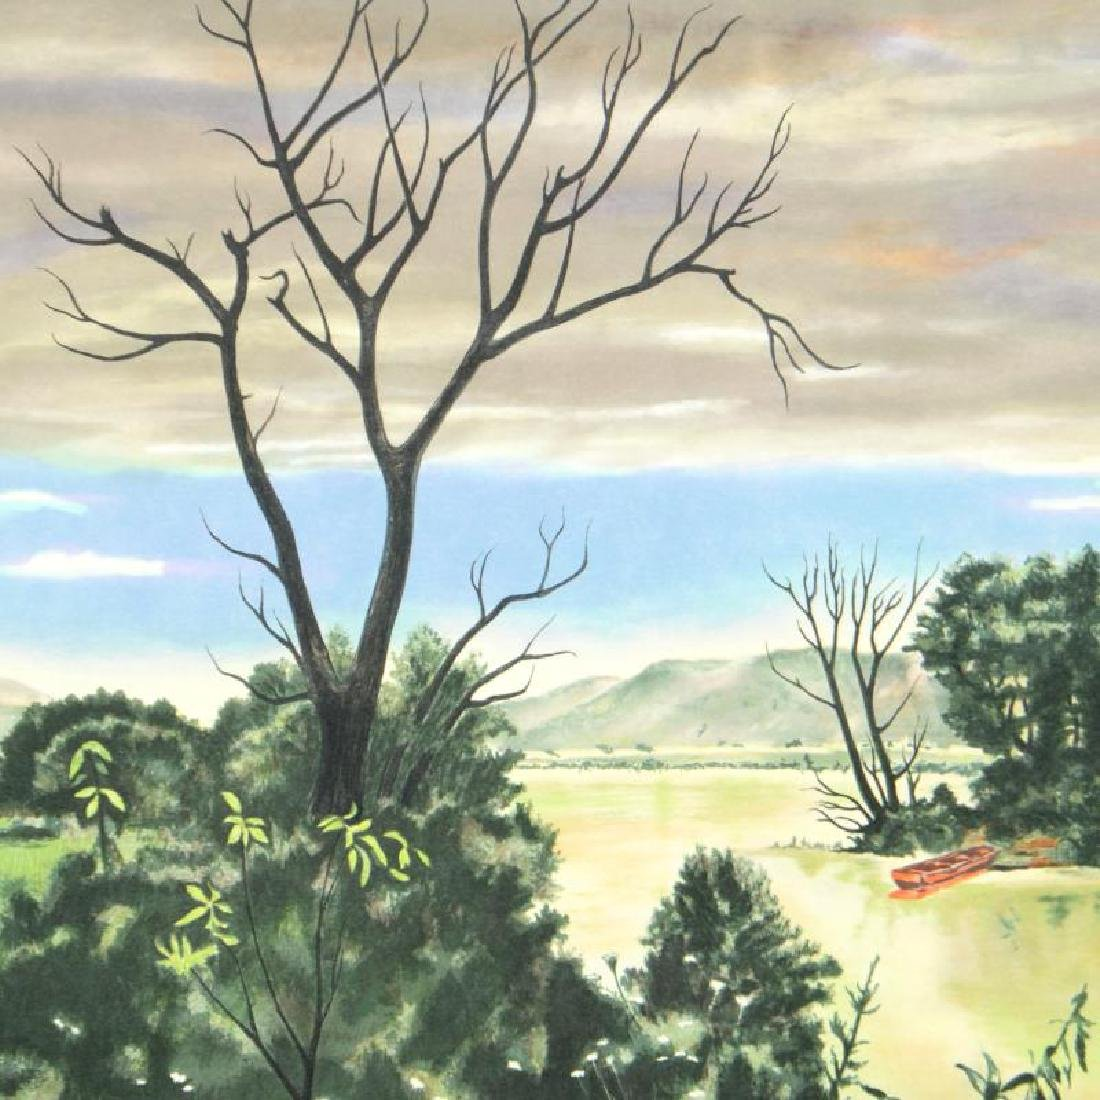 The Marsh by Carter (1904-2000) - 2